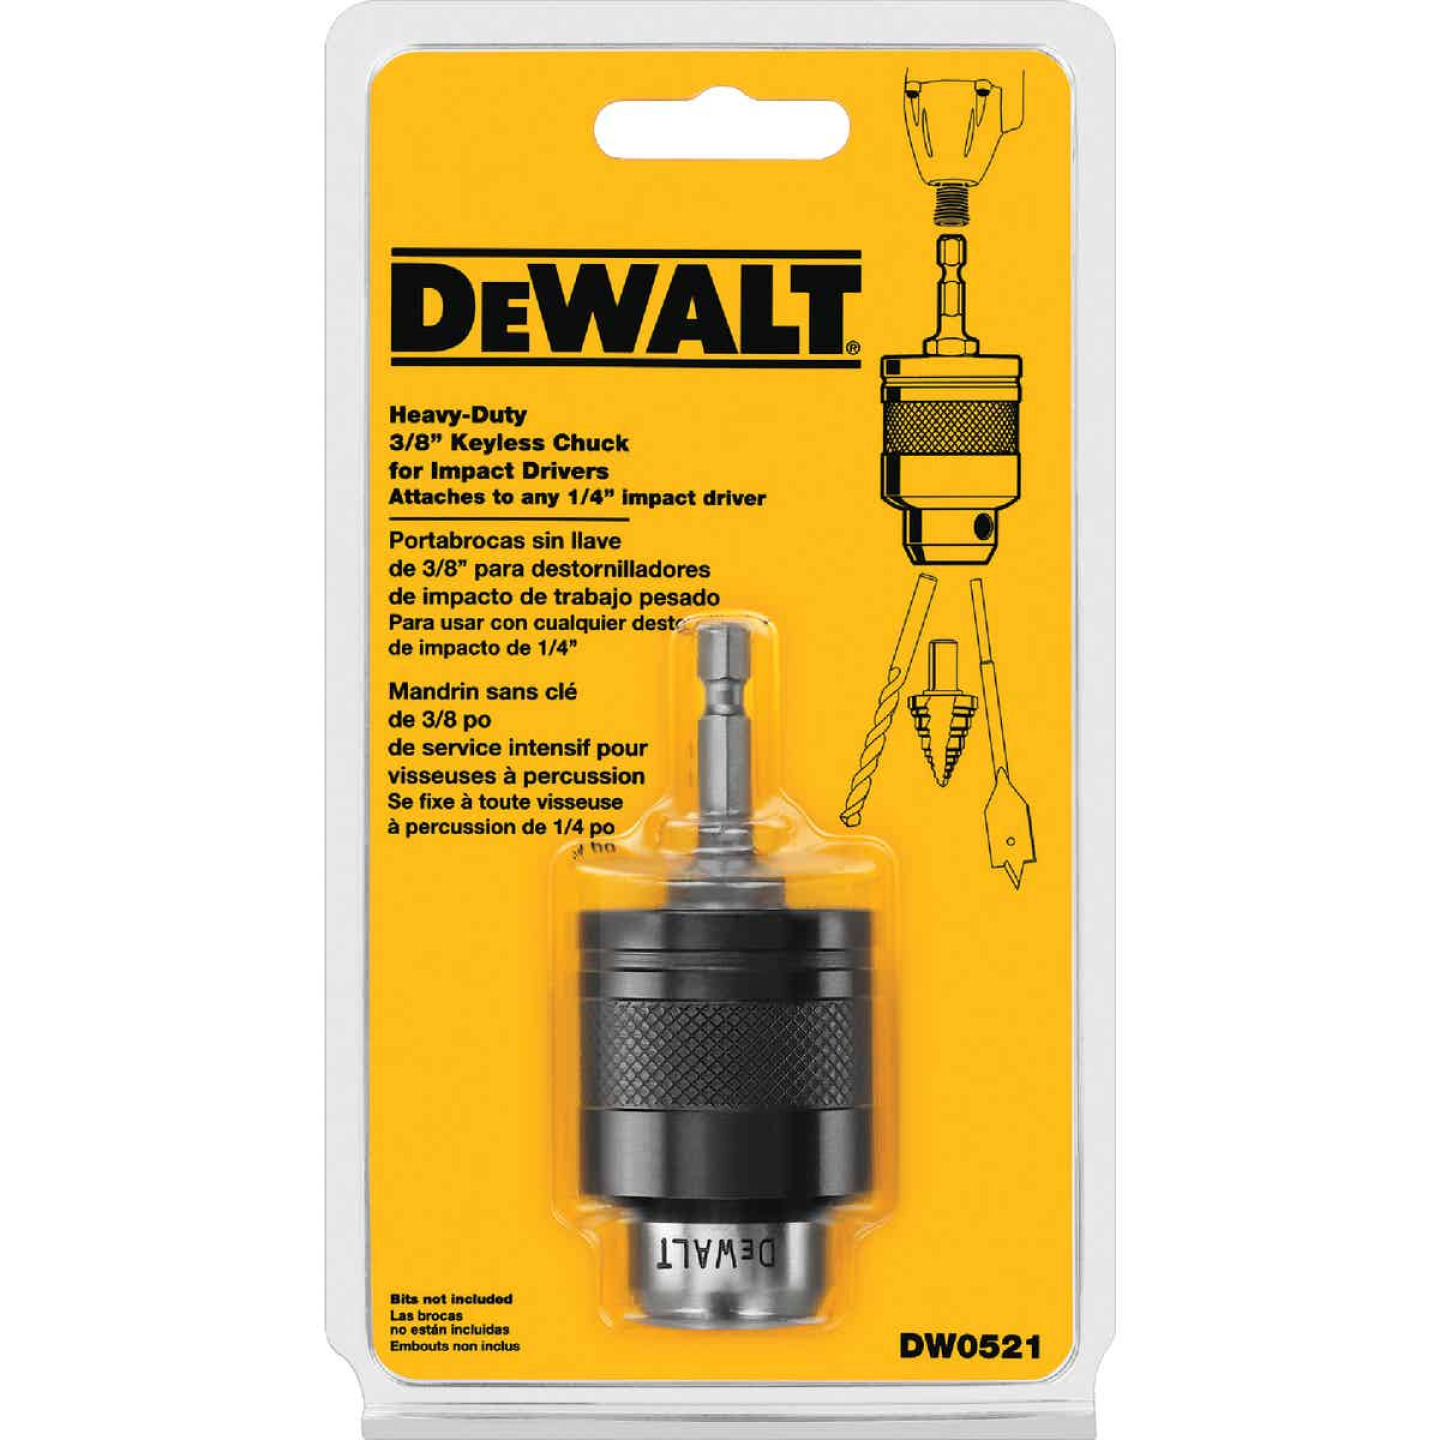 DeWalt 1/4 In. Quick Connet to 3/8 In. Keyless Impact Chuck Adapter Image 4